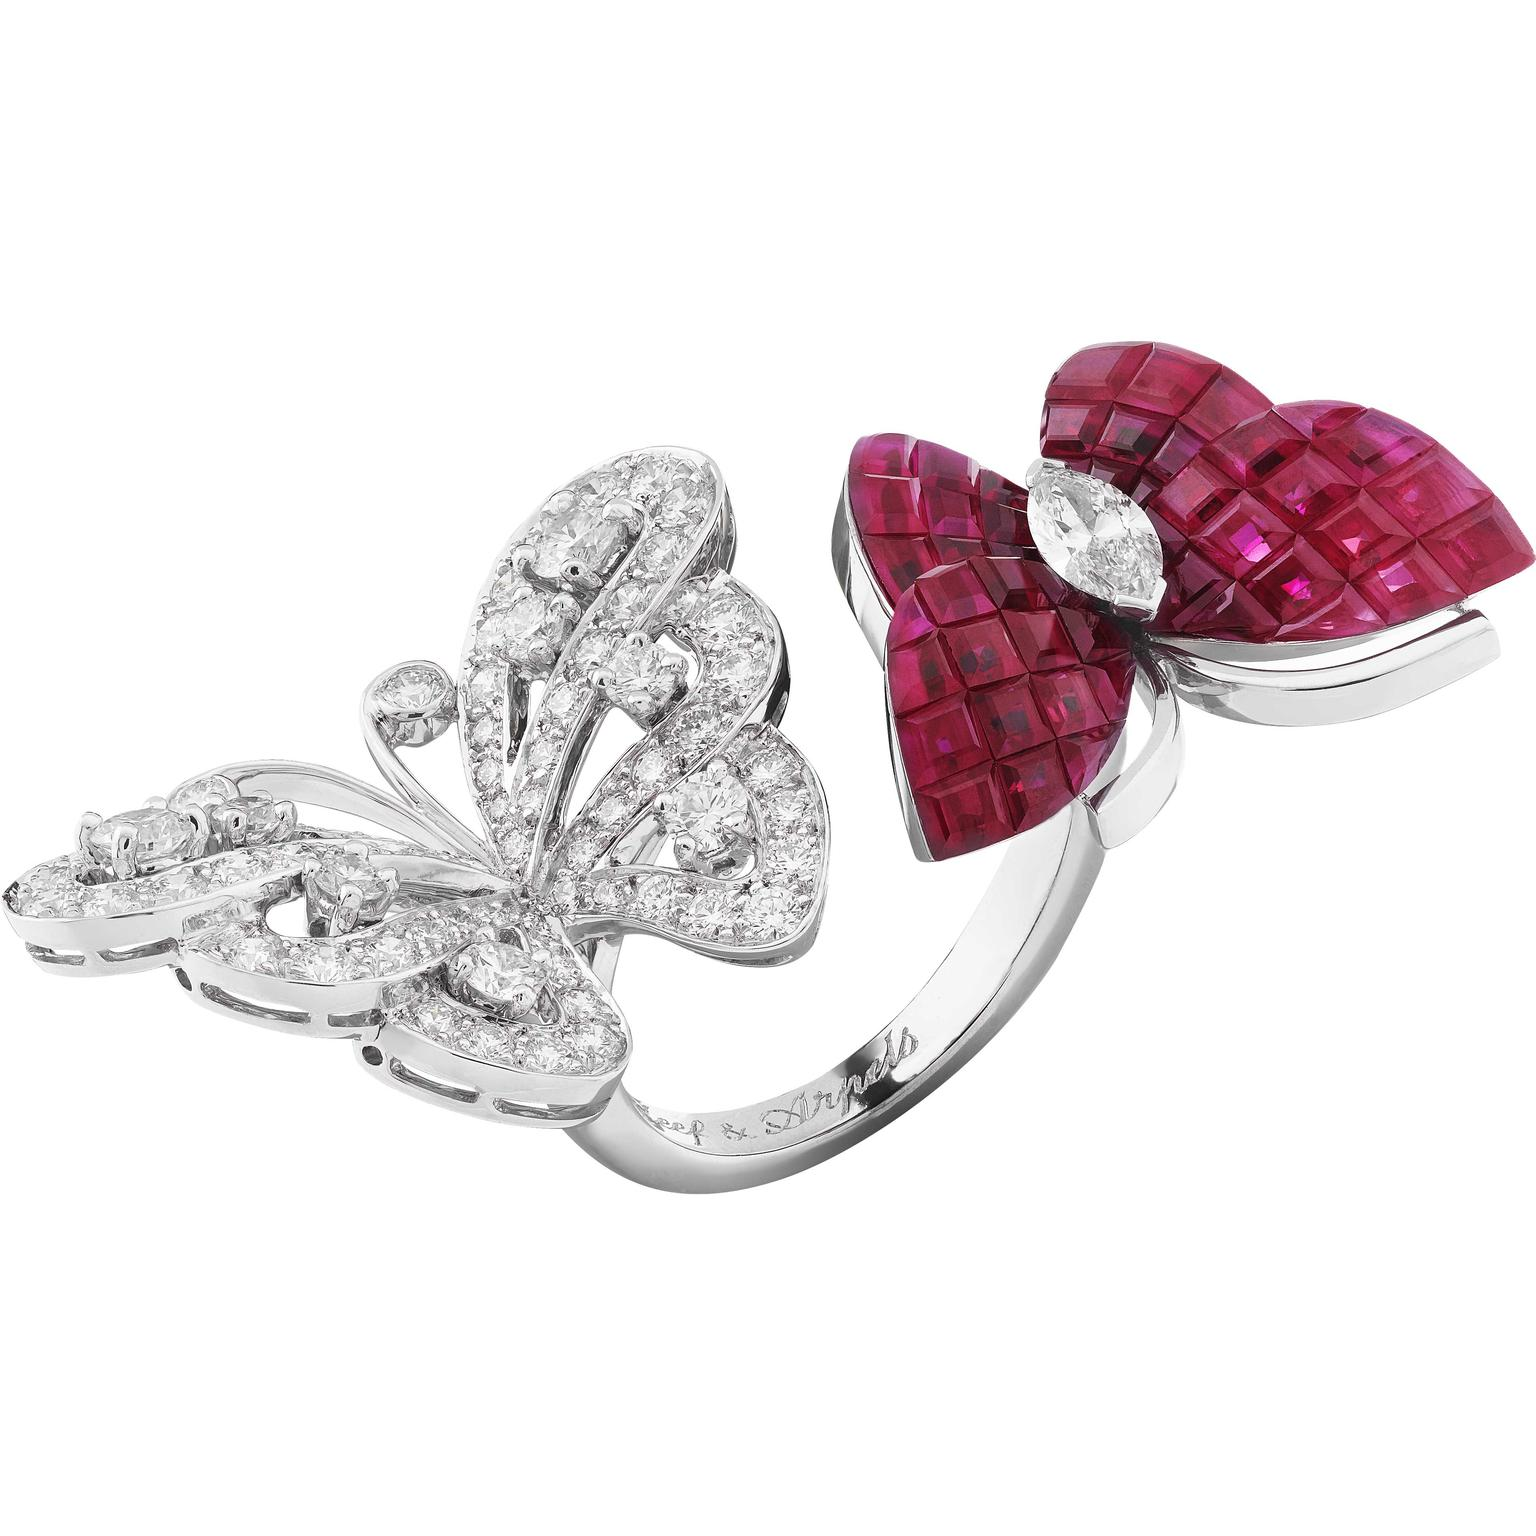 Van Cleef Arpels Flying Butterfly between the finger ring